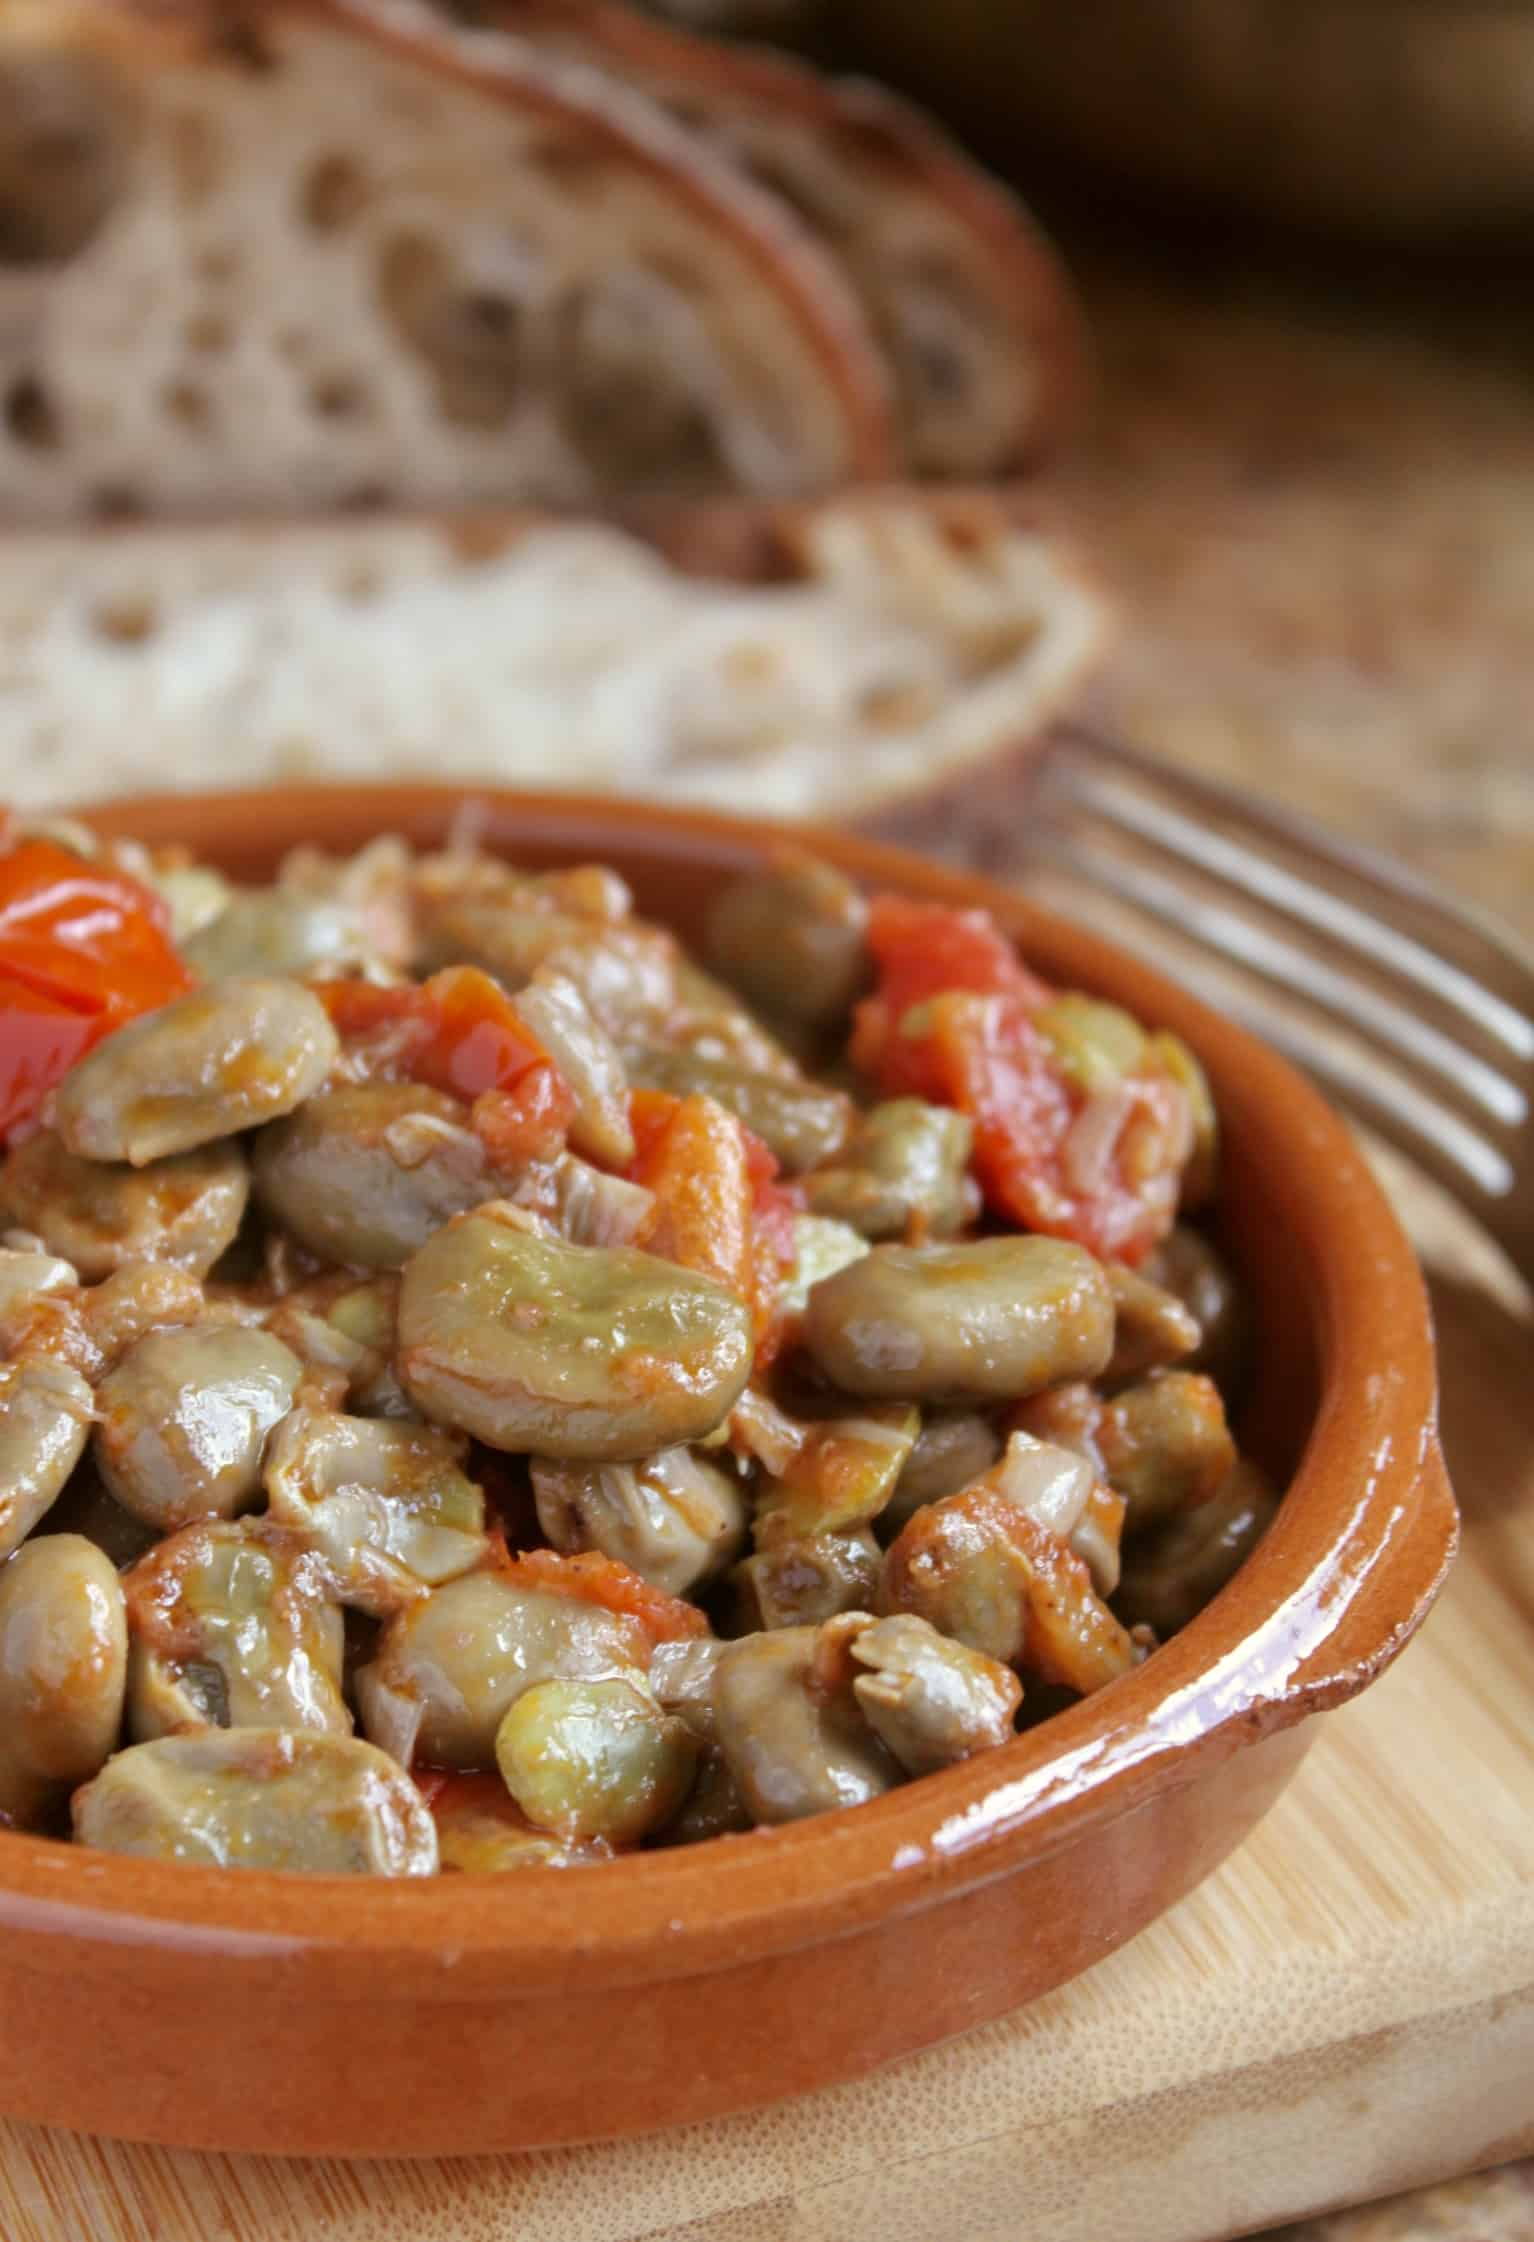 broad beans and tomatoes in a bowl with bread